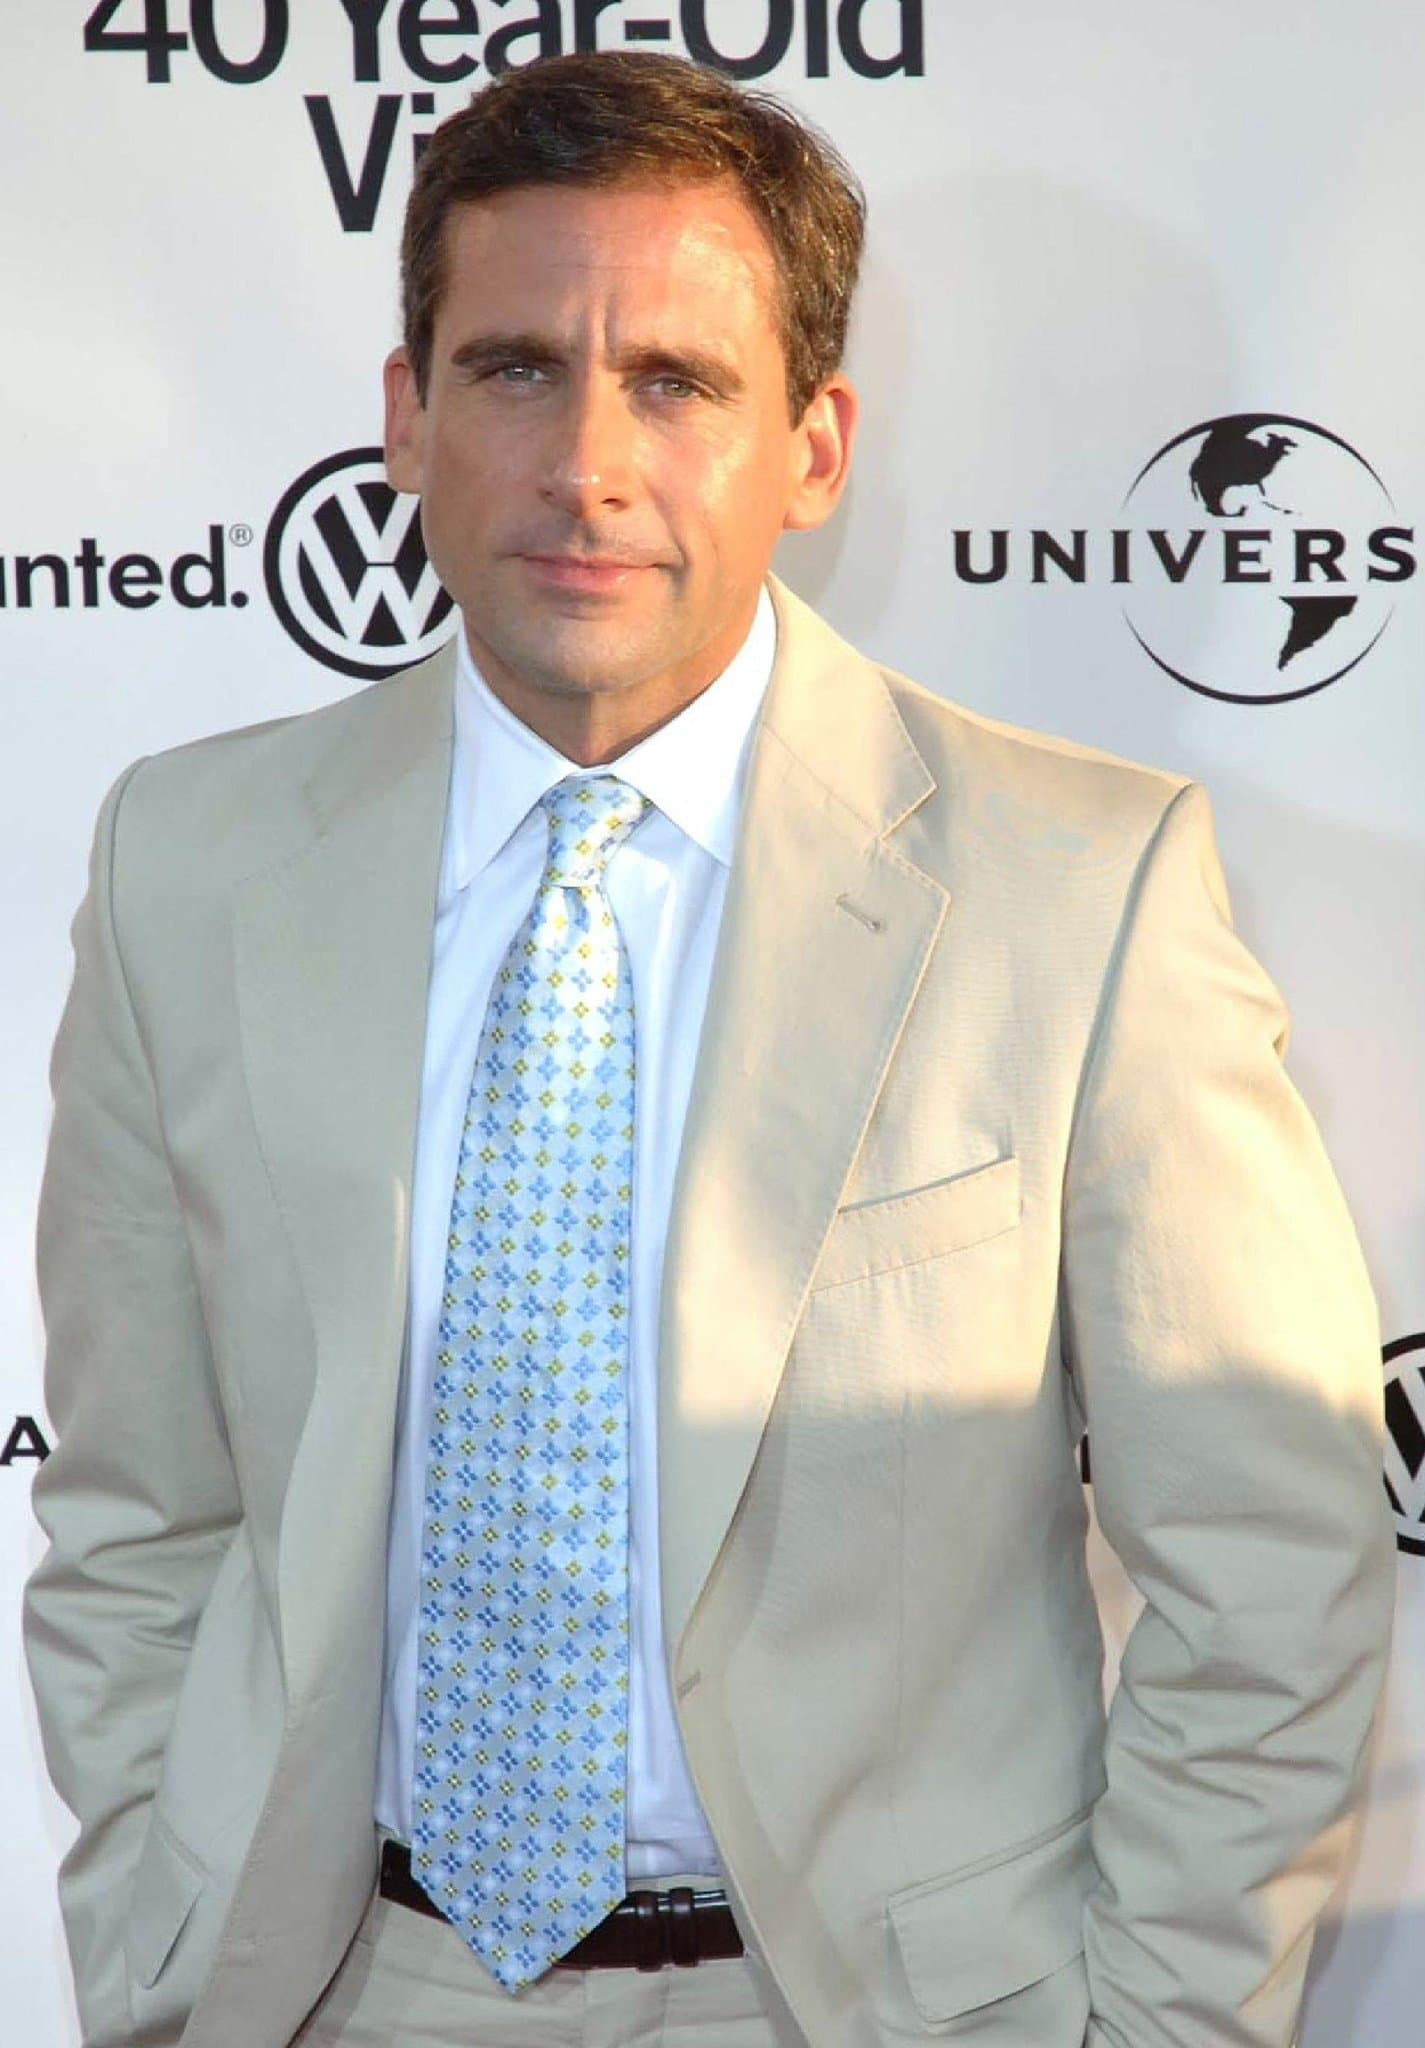 After gaining recognition on The Daily Show, Steve Carell landed his breakthrough role as the comical boss in the mockumentary sitcom The Office in 2005